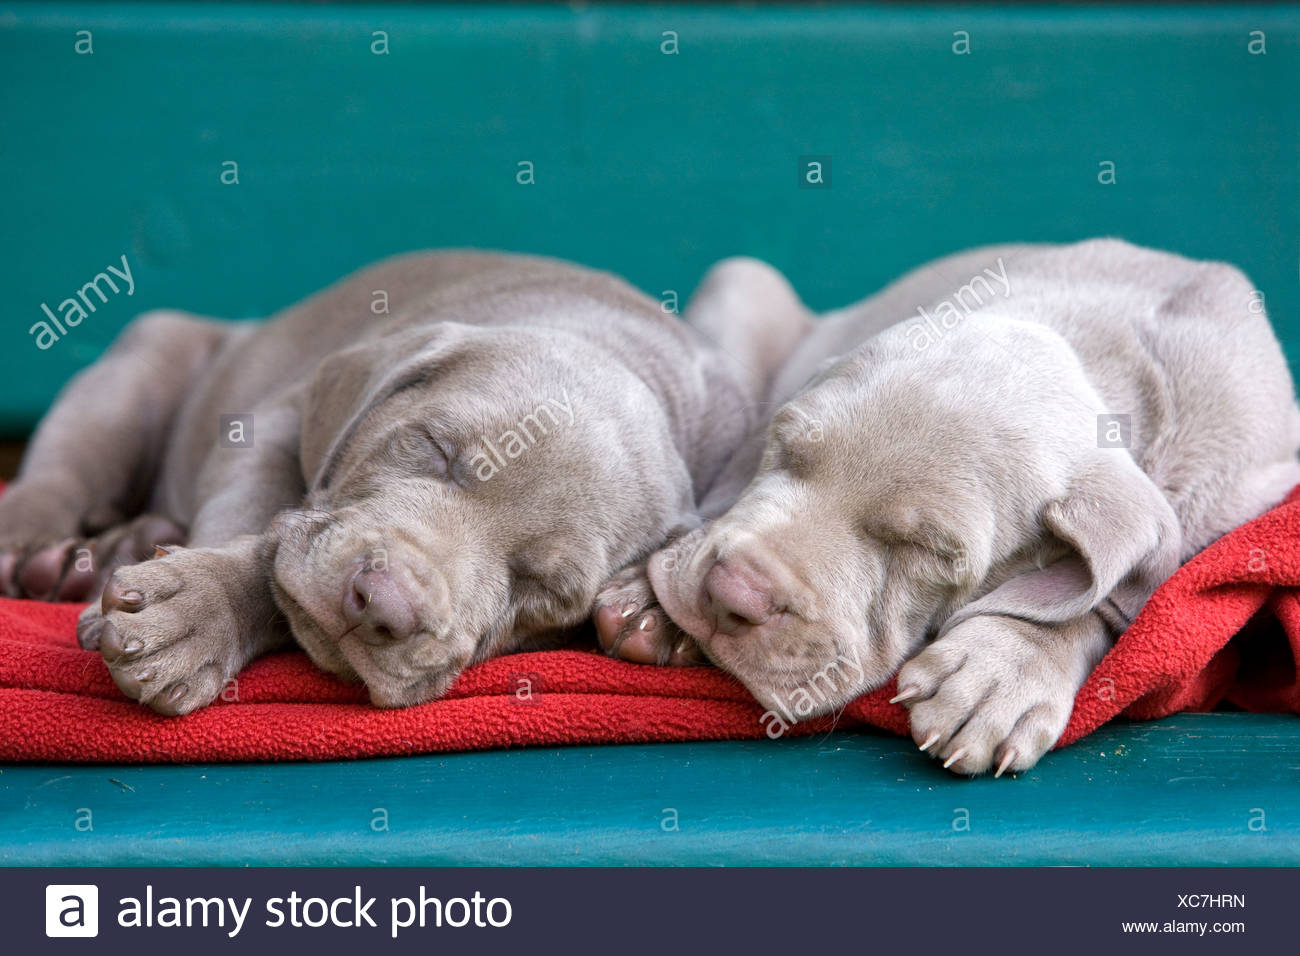 Weimaraner dogs, puppies, sleeping on a bench, North Tyrol, Austria, Europe Stock Photo